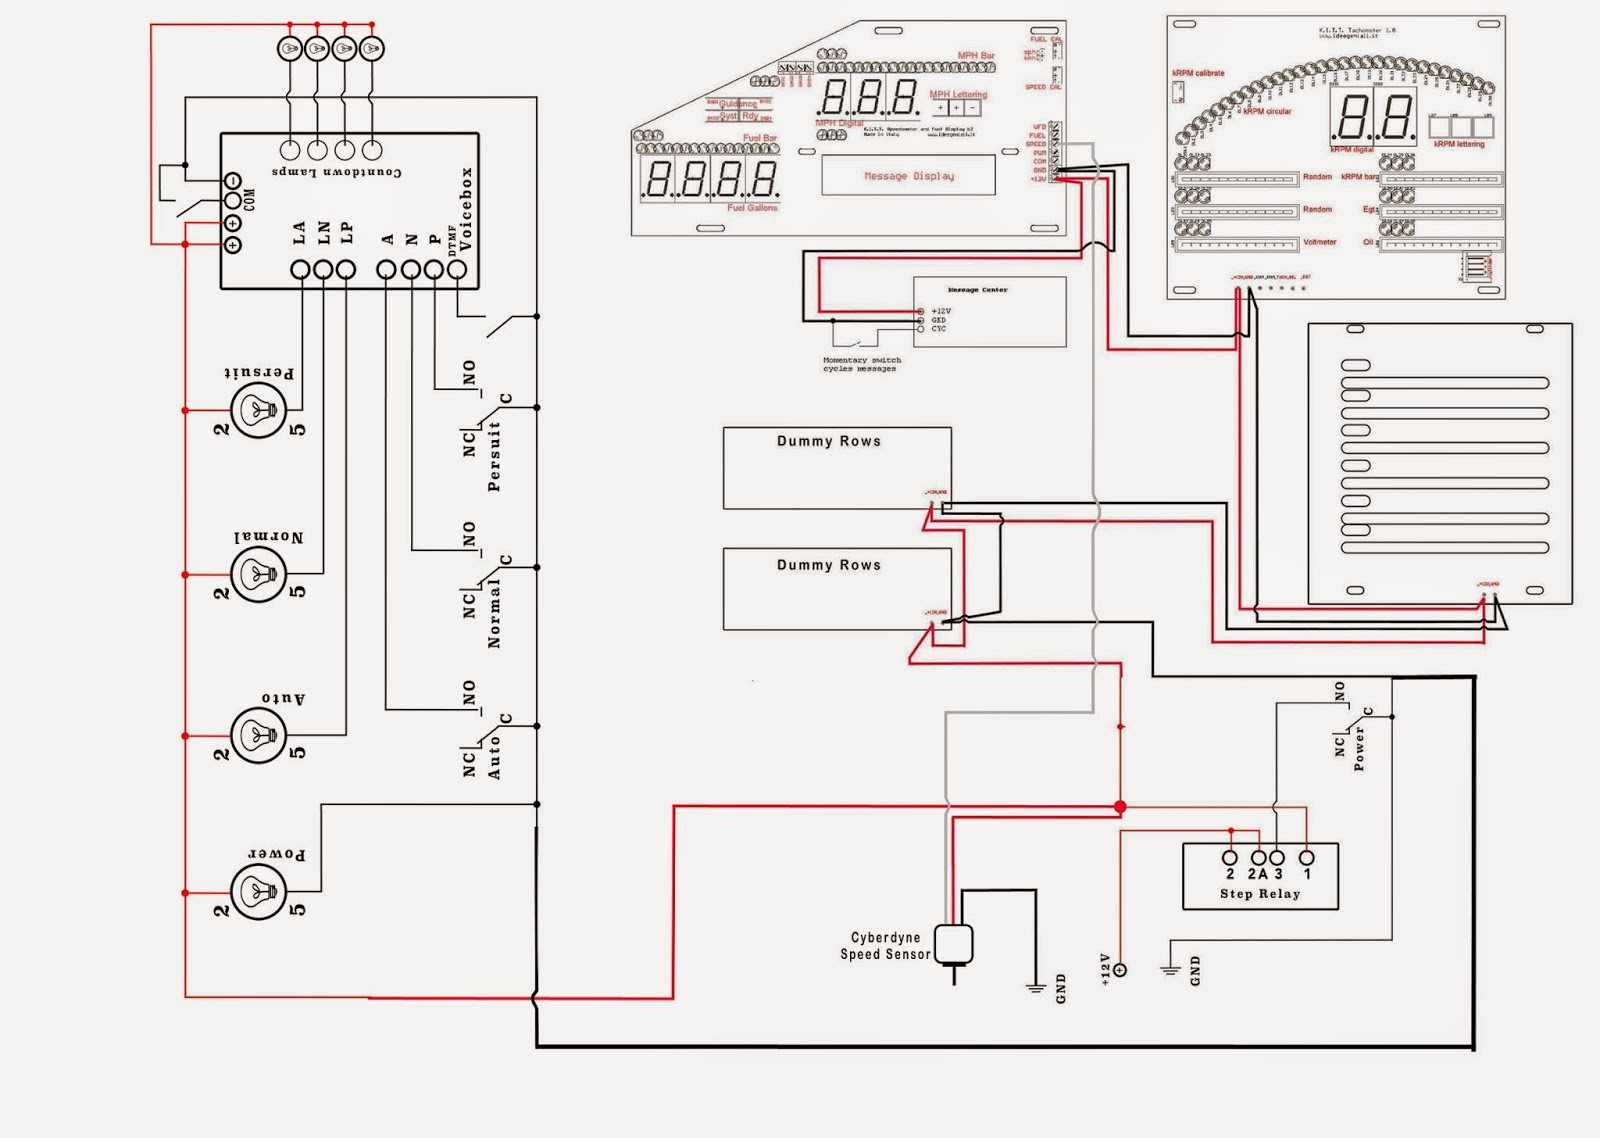 my knight rider 2000 project diagrams and schematics rh myknightrider2000 blogspot com electronics wiring diagrams cp electronics wiring diagrams